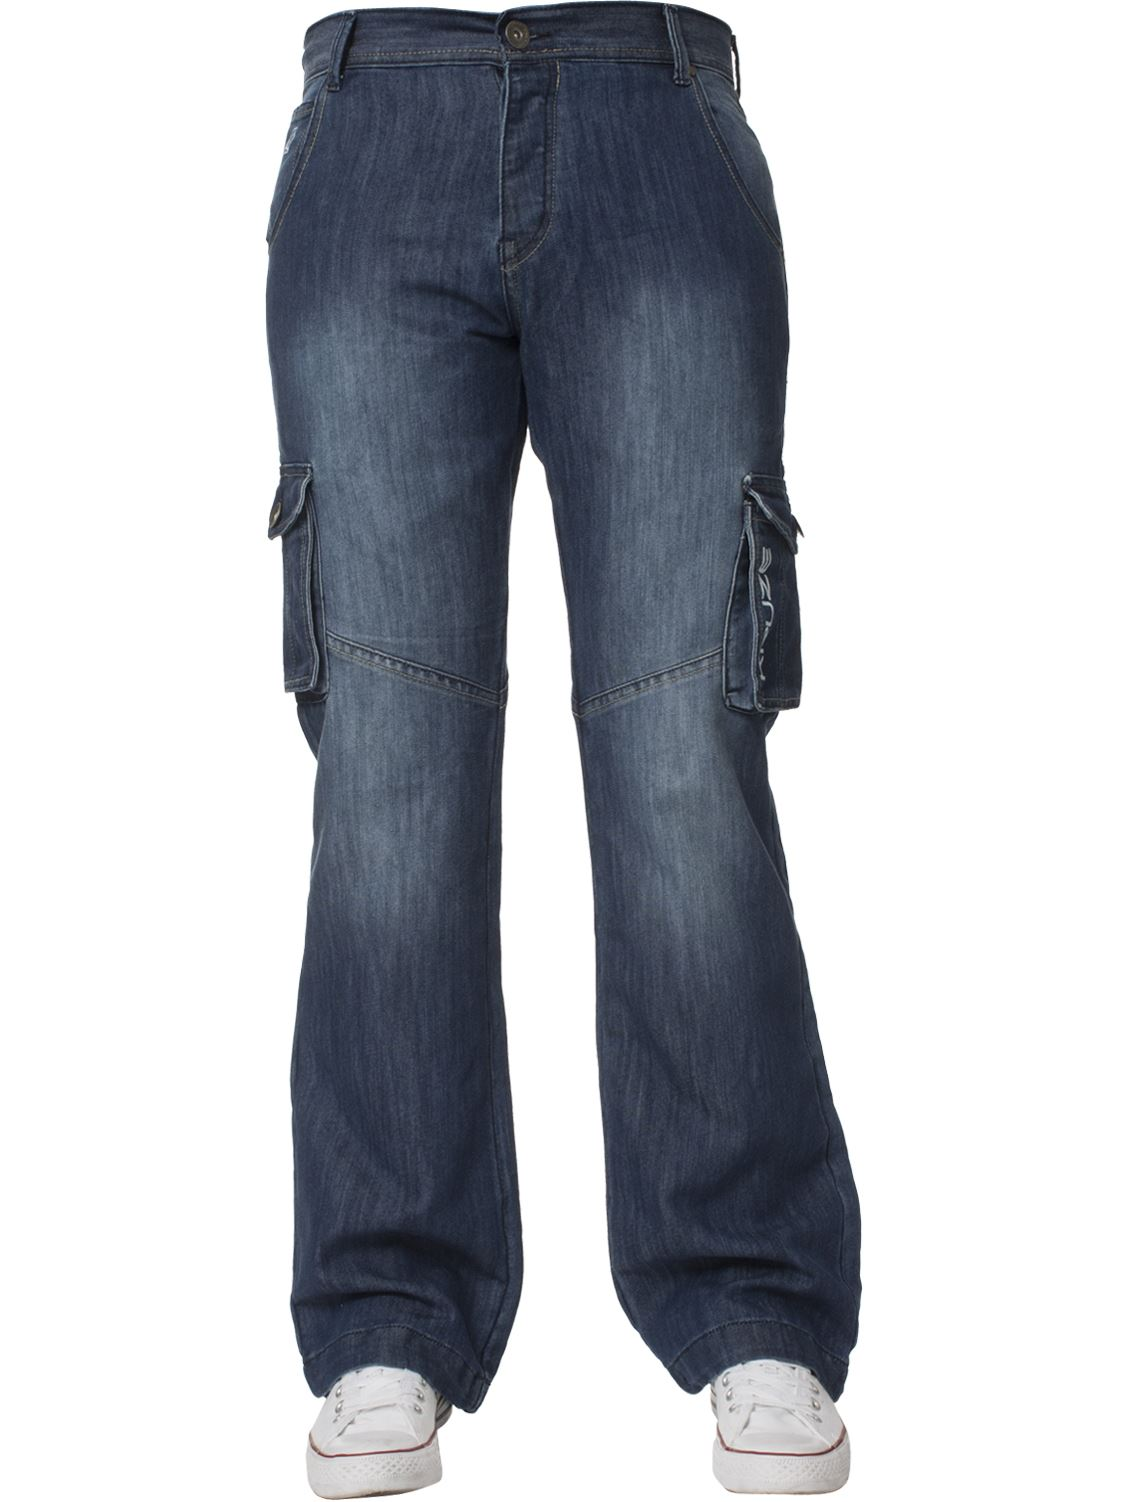 KRUZE-Mens-Combat-Jeans-Casual-Cargo-Work-Pants-Denim-Trousers-All-Waist-Sizes thumbnail 11